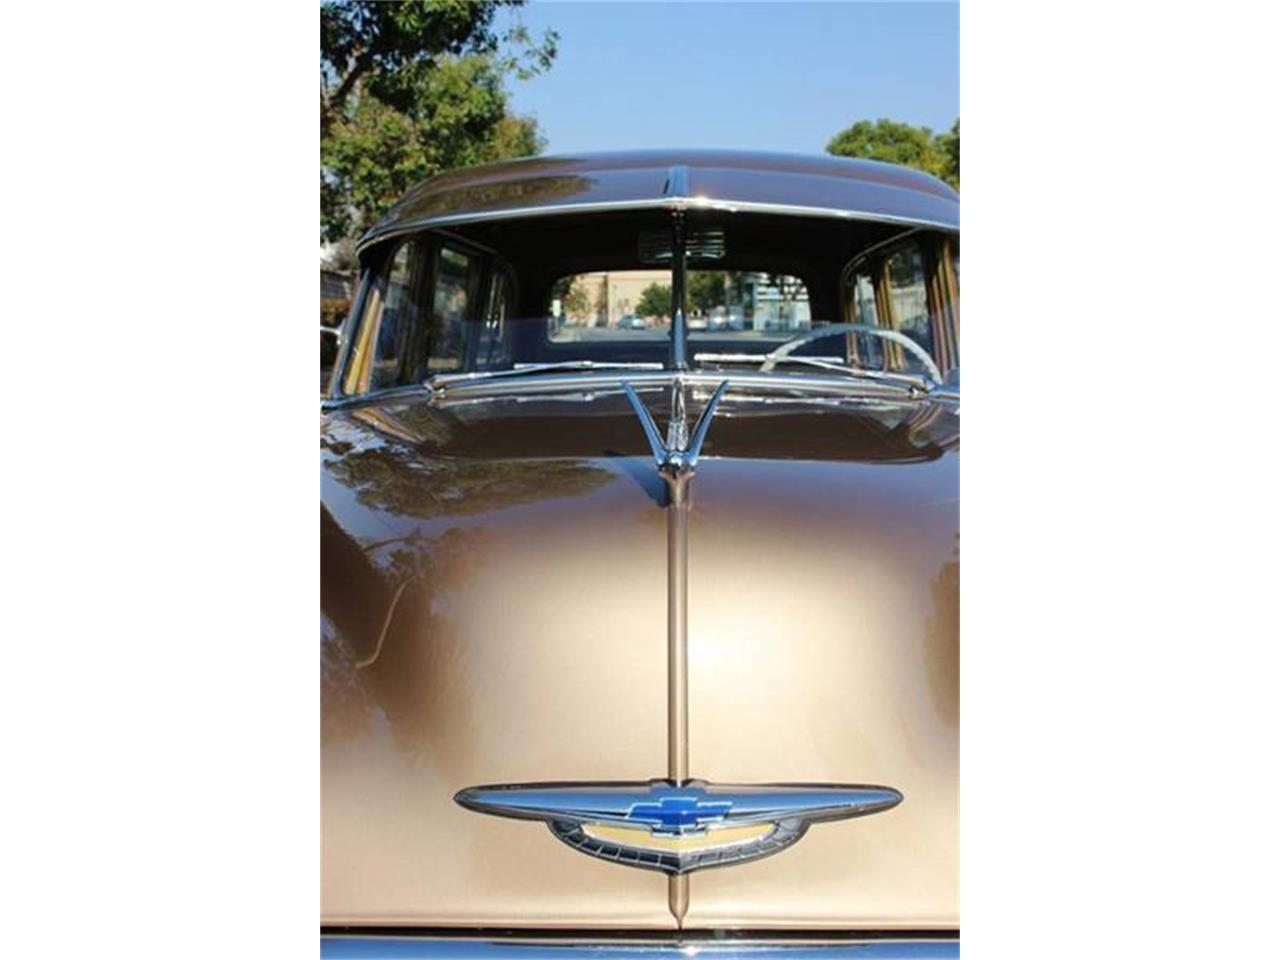 1950 Chevrolet Styleline Deluxe for sale in La Verne, CA – photo 16